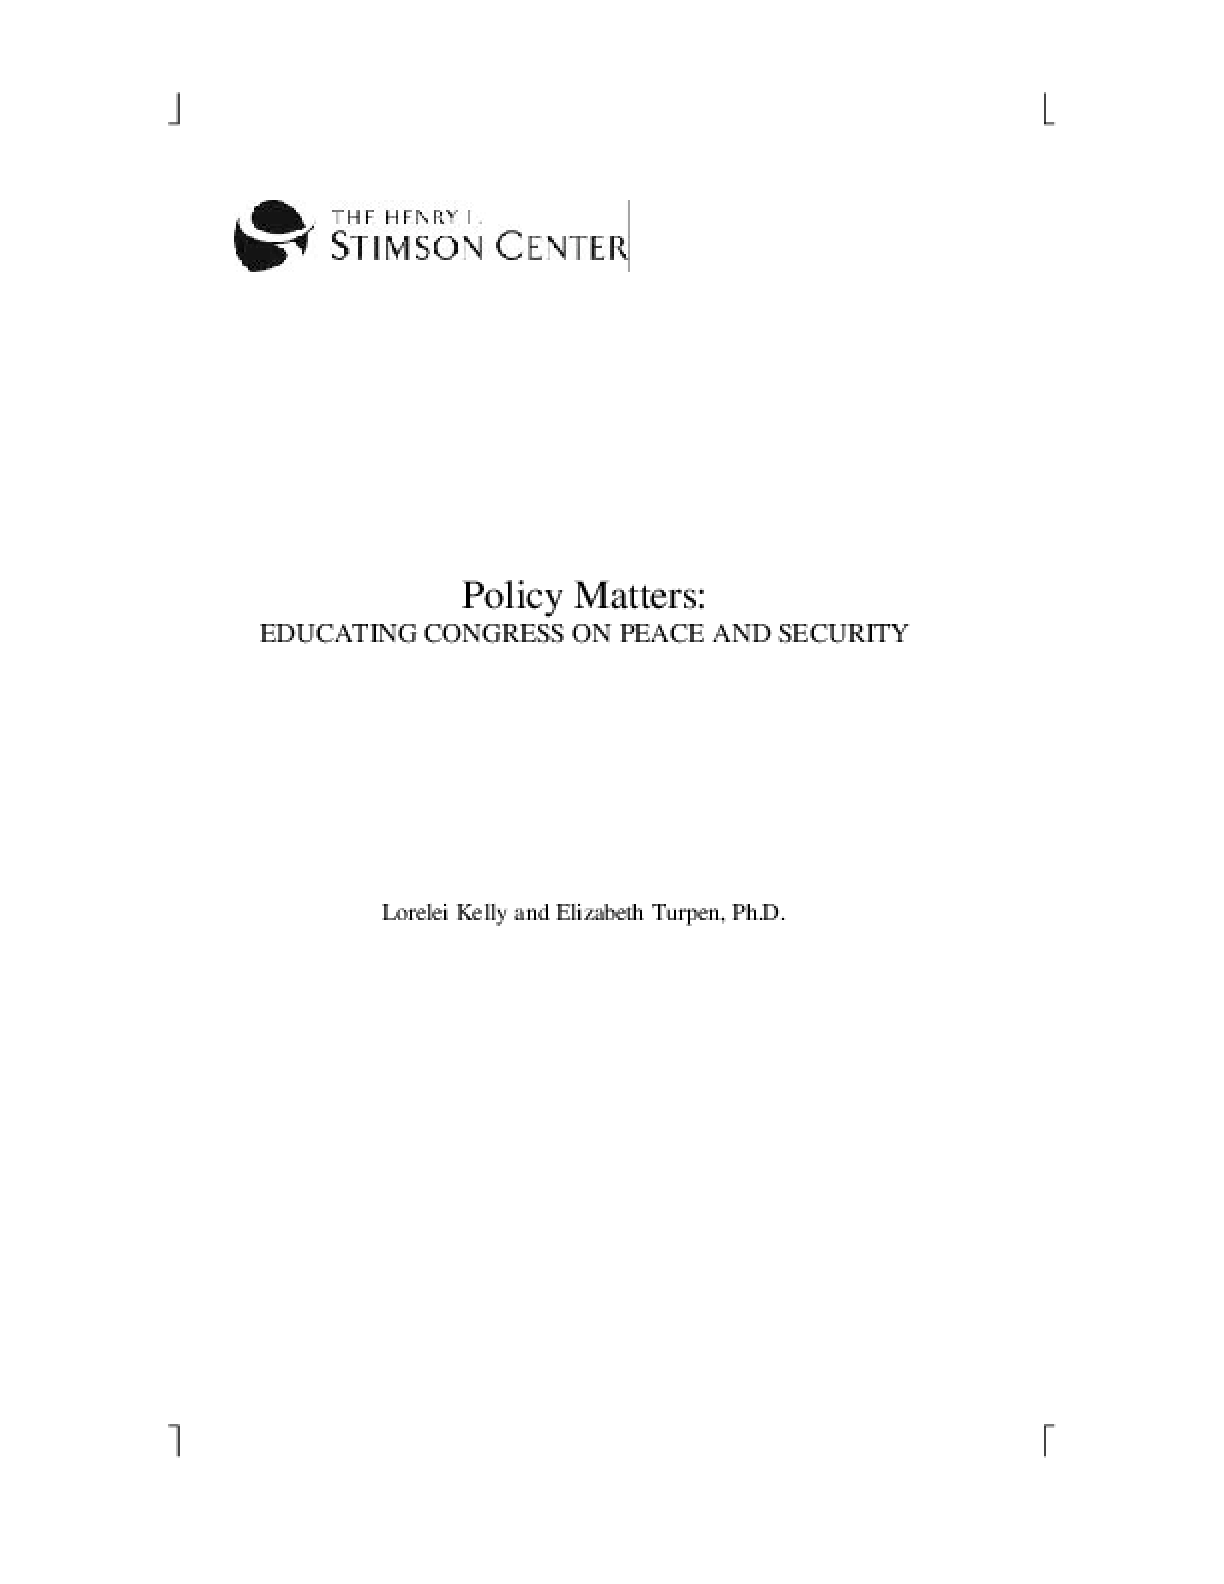 Policy Matters: Educating Congress on Peace and Security